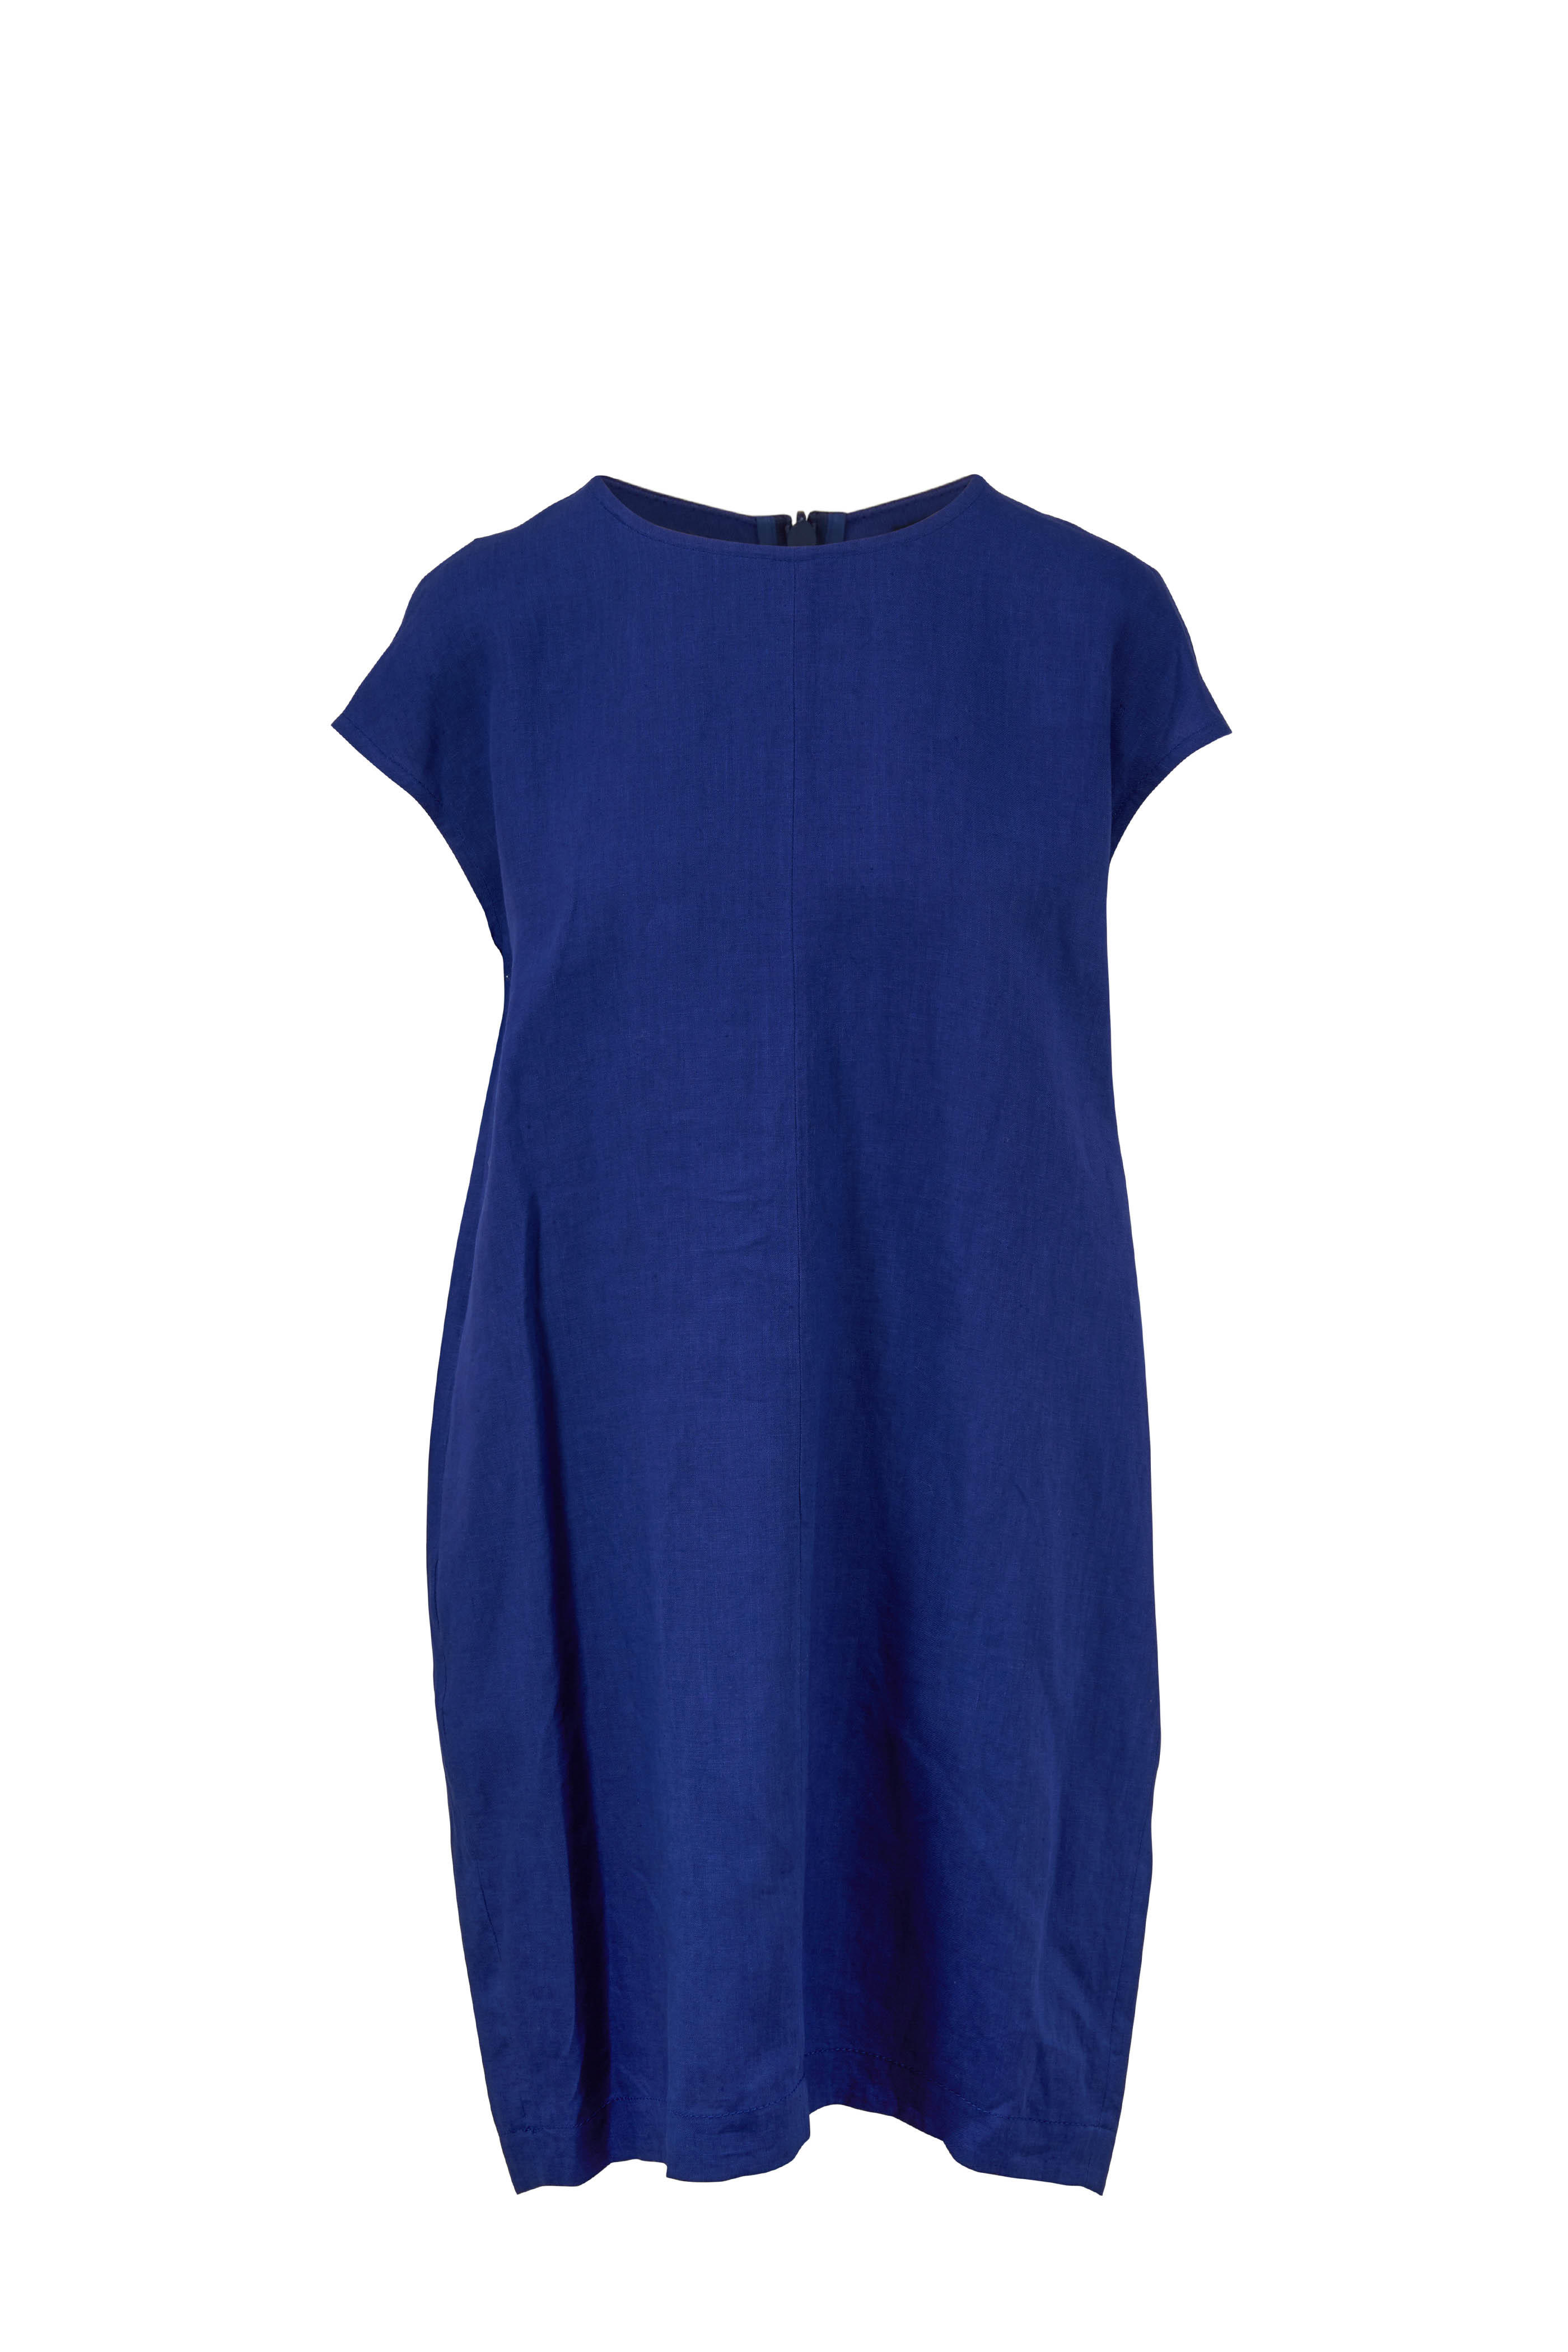 5929307c7c Antonelli - Lamped Blue Linen Cap Sleeve Dress